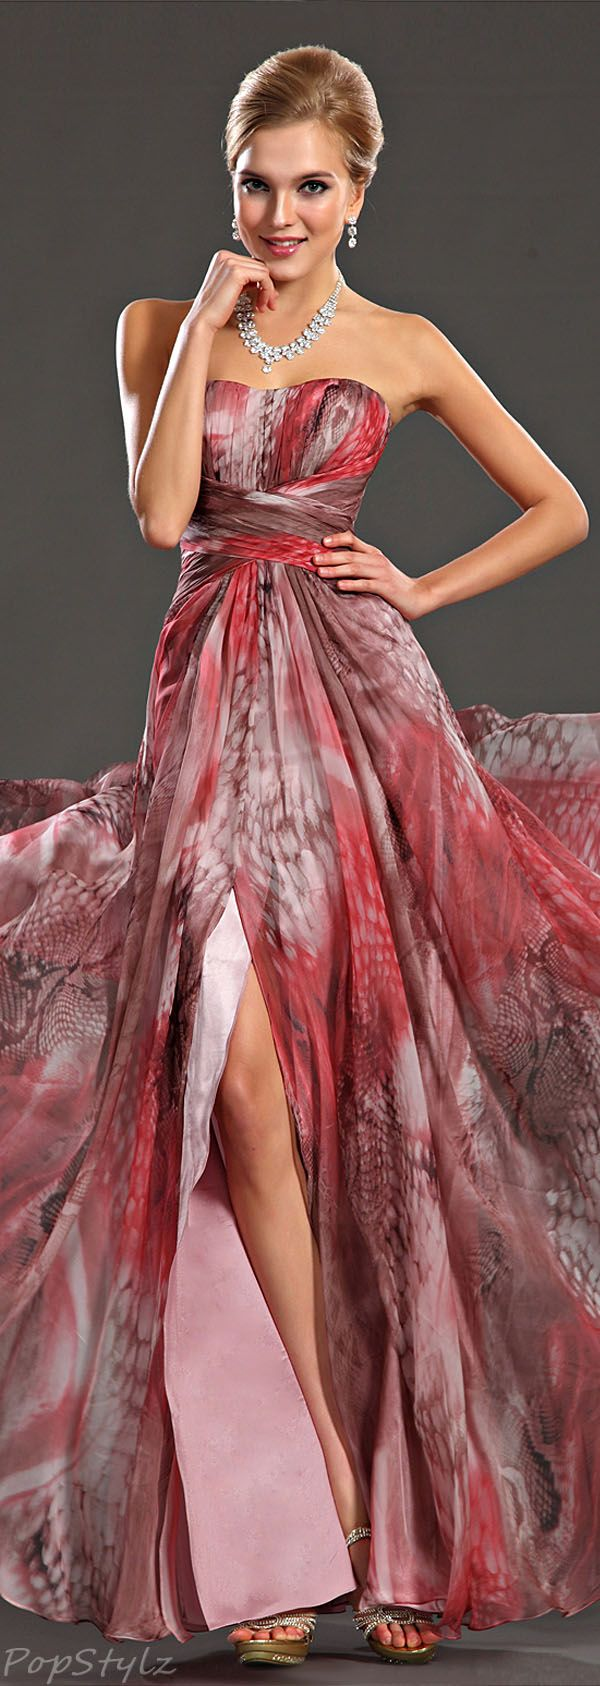 Pretty Printed Evening Gown  http://www.skinception.com Use the coupon code: stretch23 To get 25% off your order! #skinception